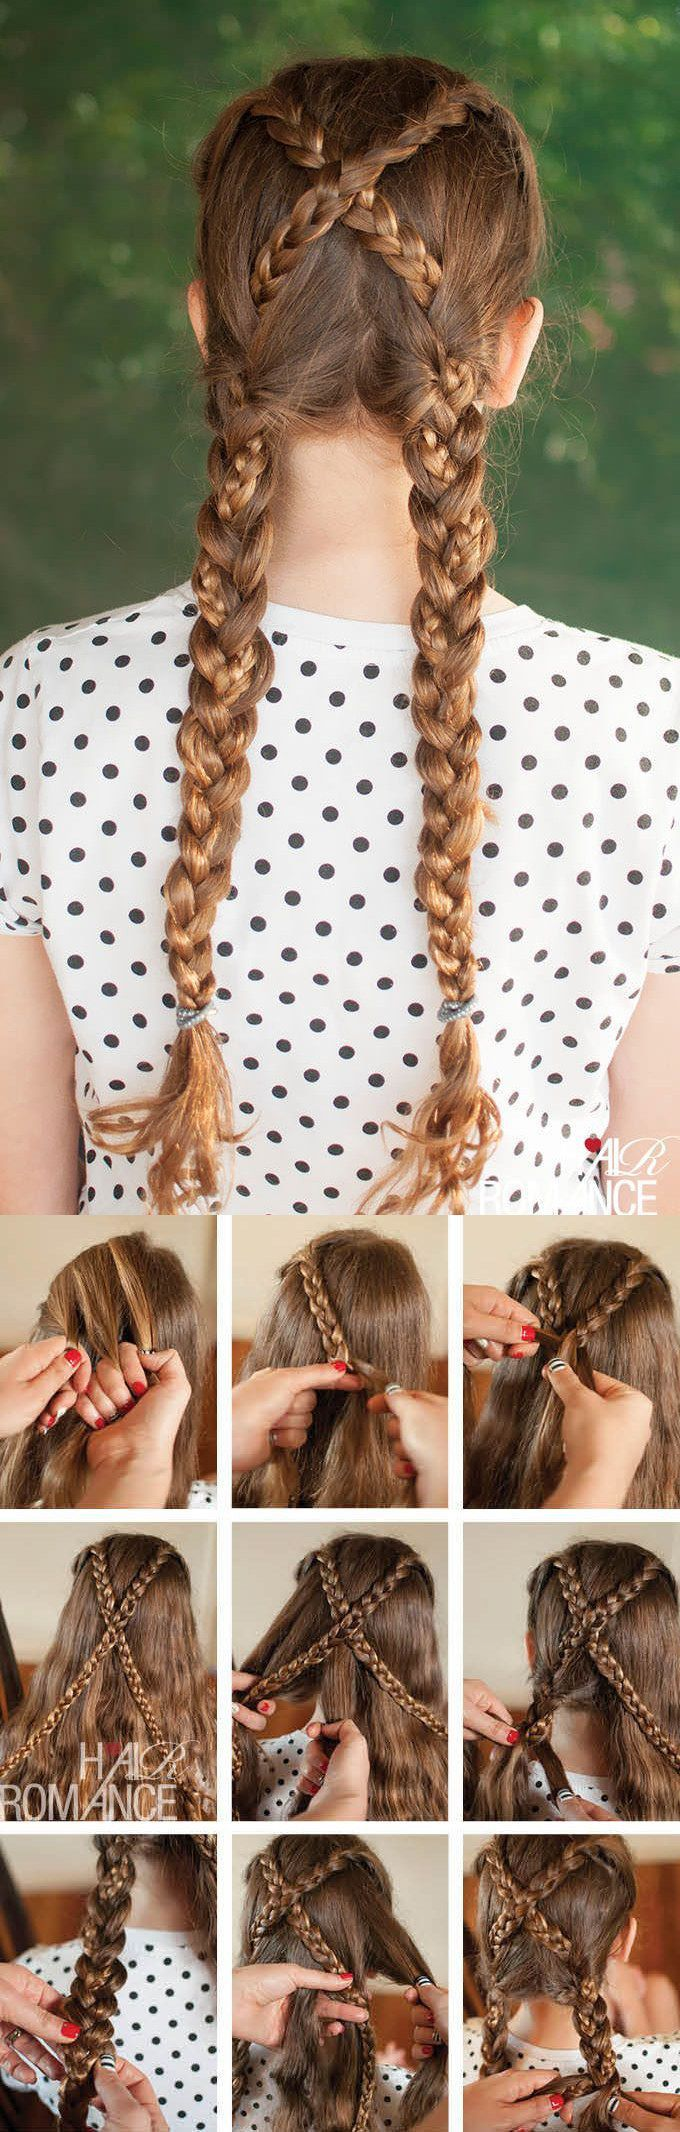 nice 10 Hair Tutorials That Will Bring Out Your Inner Disney Princess by http://www.dana-haircuts.xyz/hair-tutorials/10-hair-tutorials-that-will-bring-out-your-inner-disney-princess/